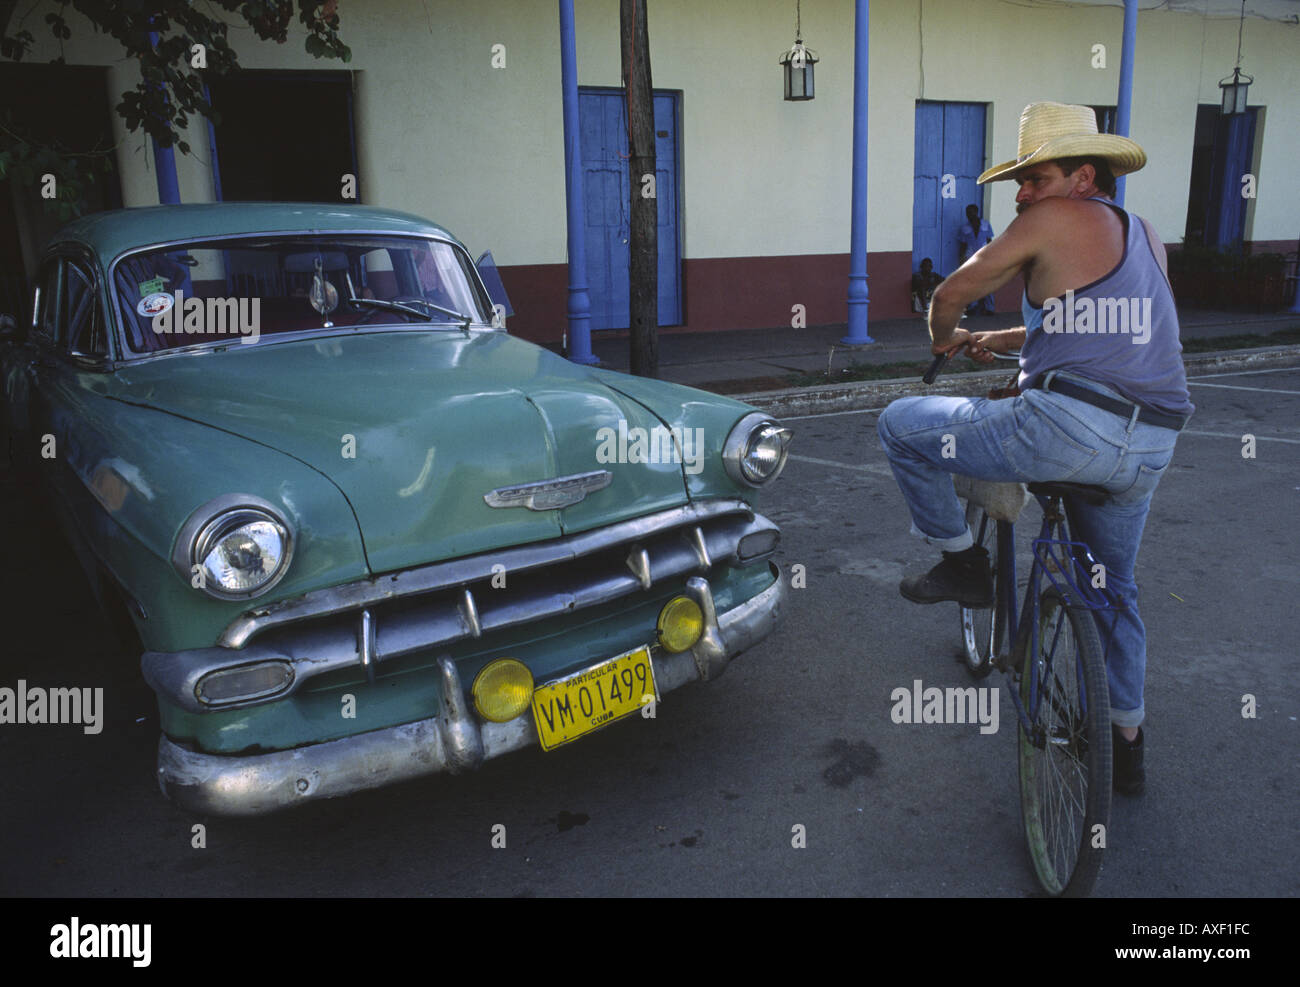 1950s American cars and bicycles from China modern day ...